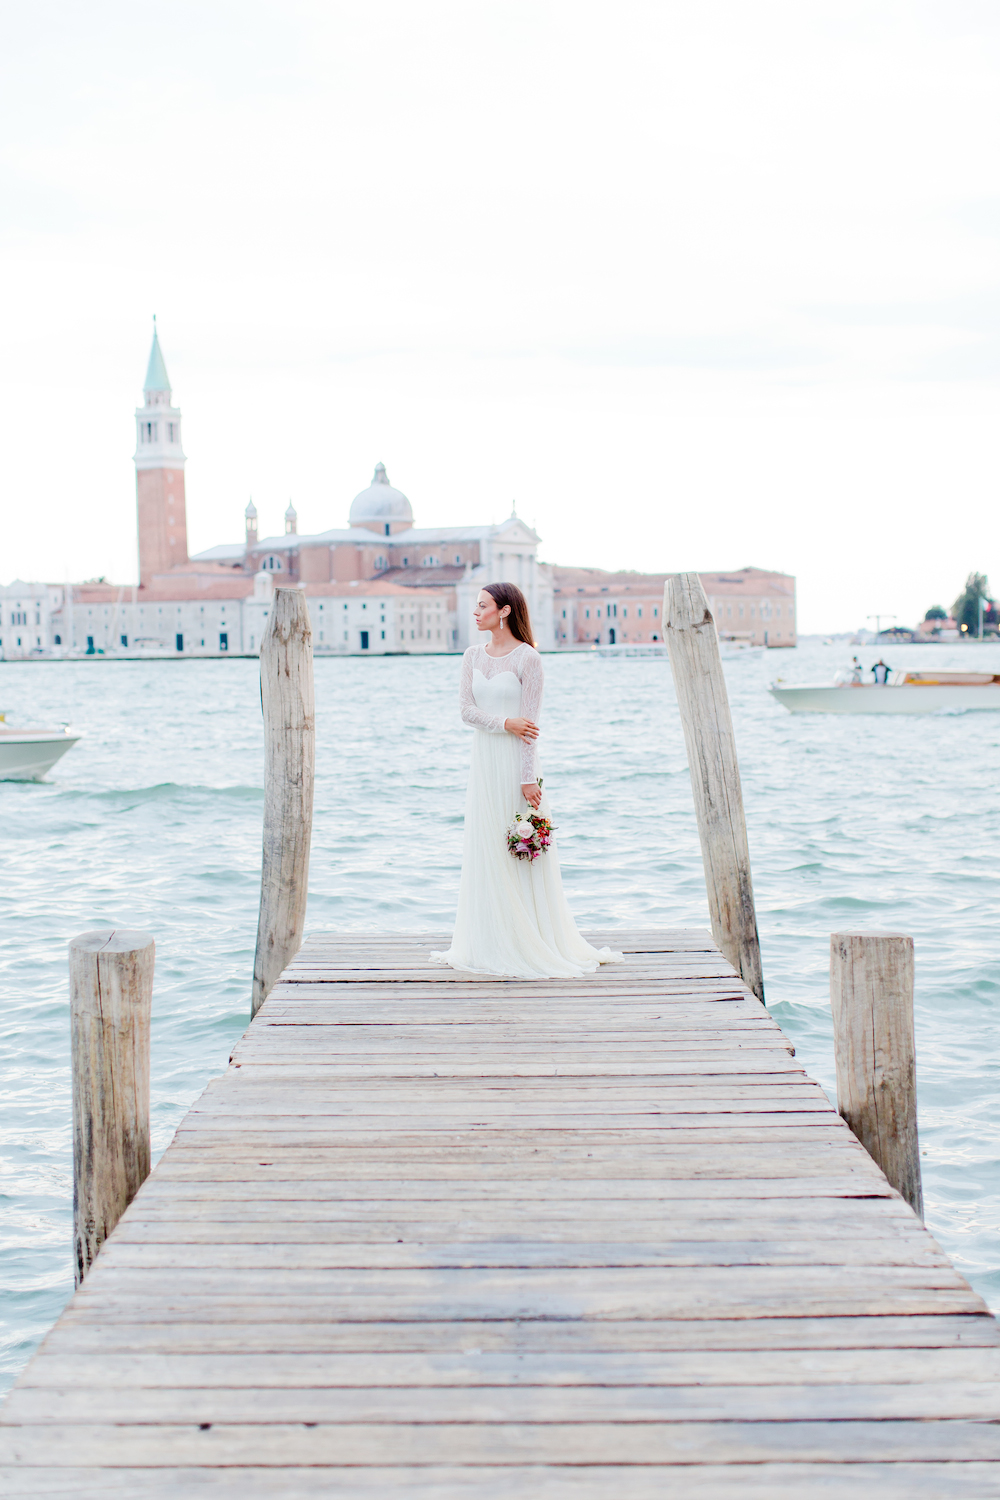 deineweddingstory venedig 24